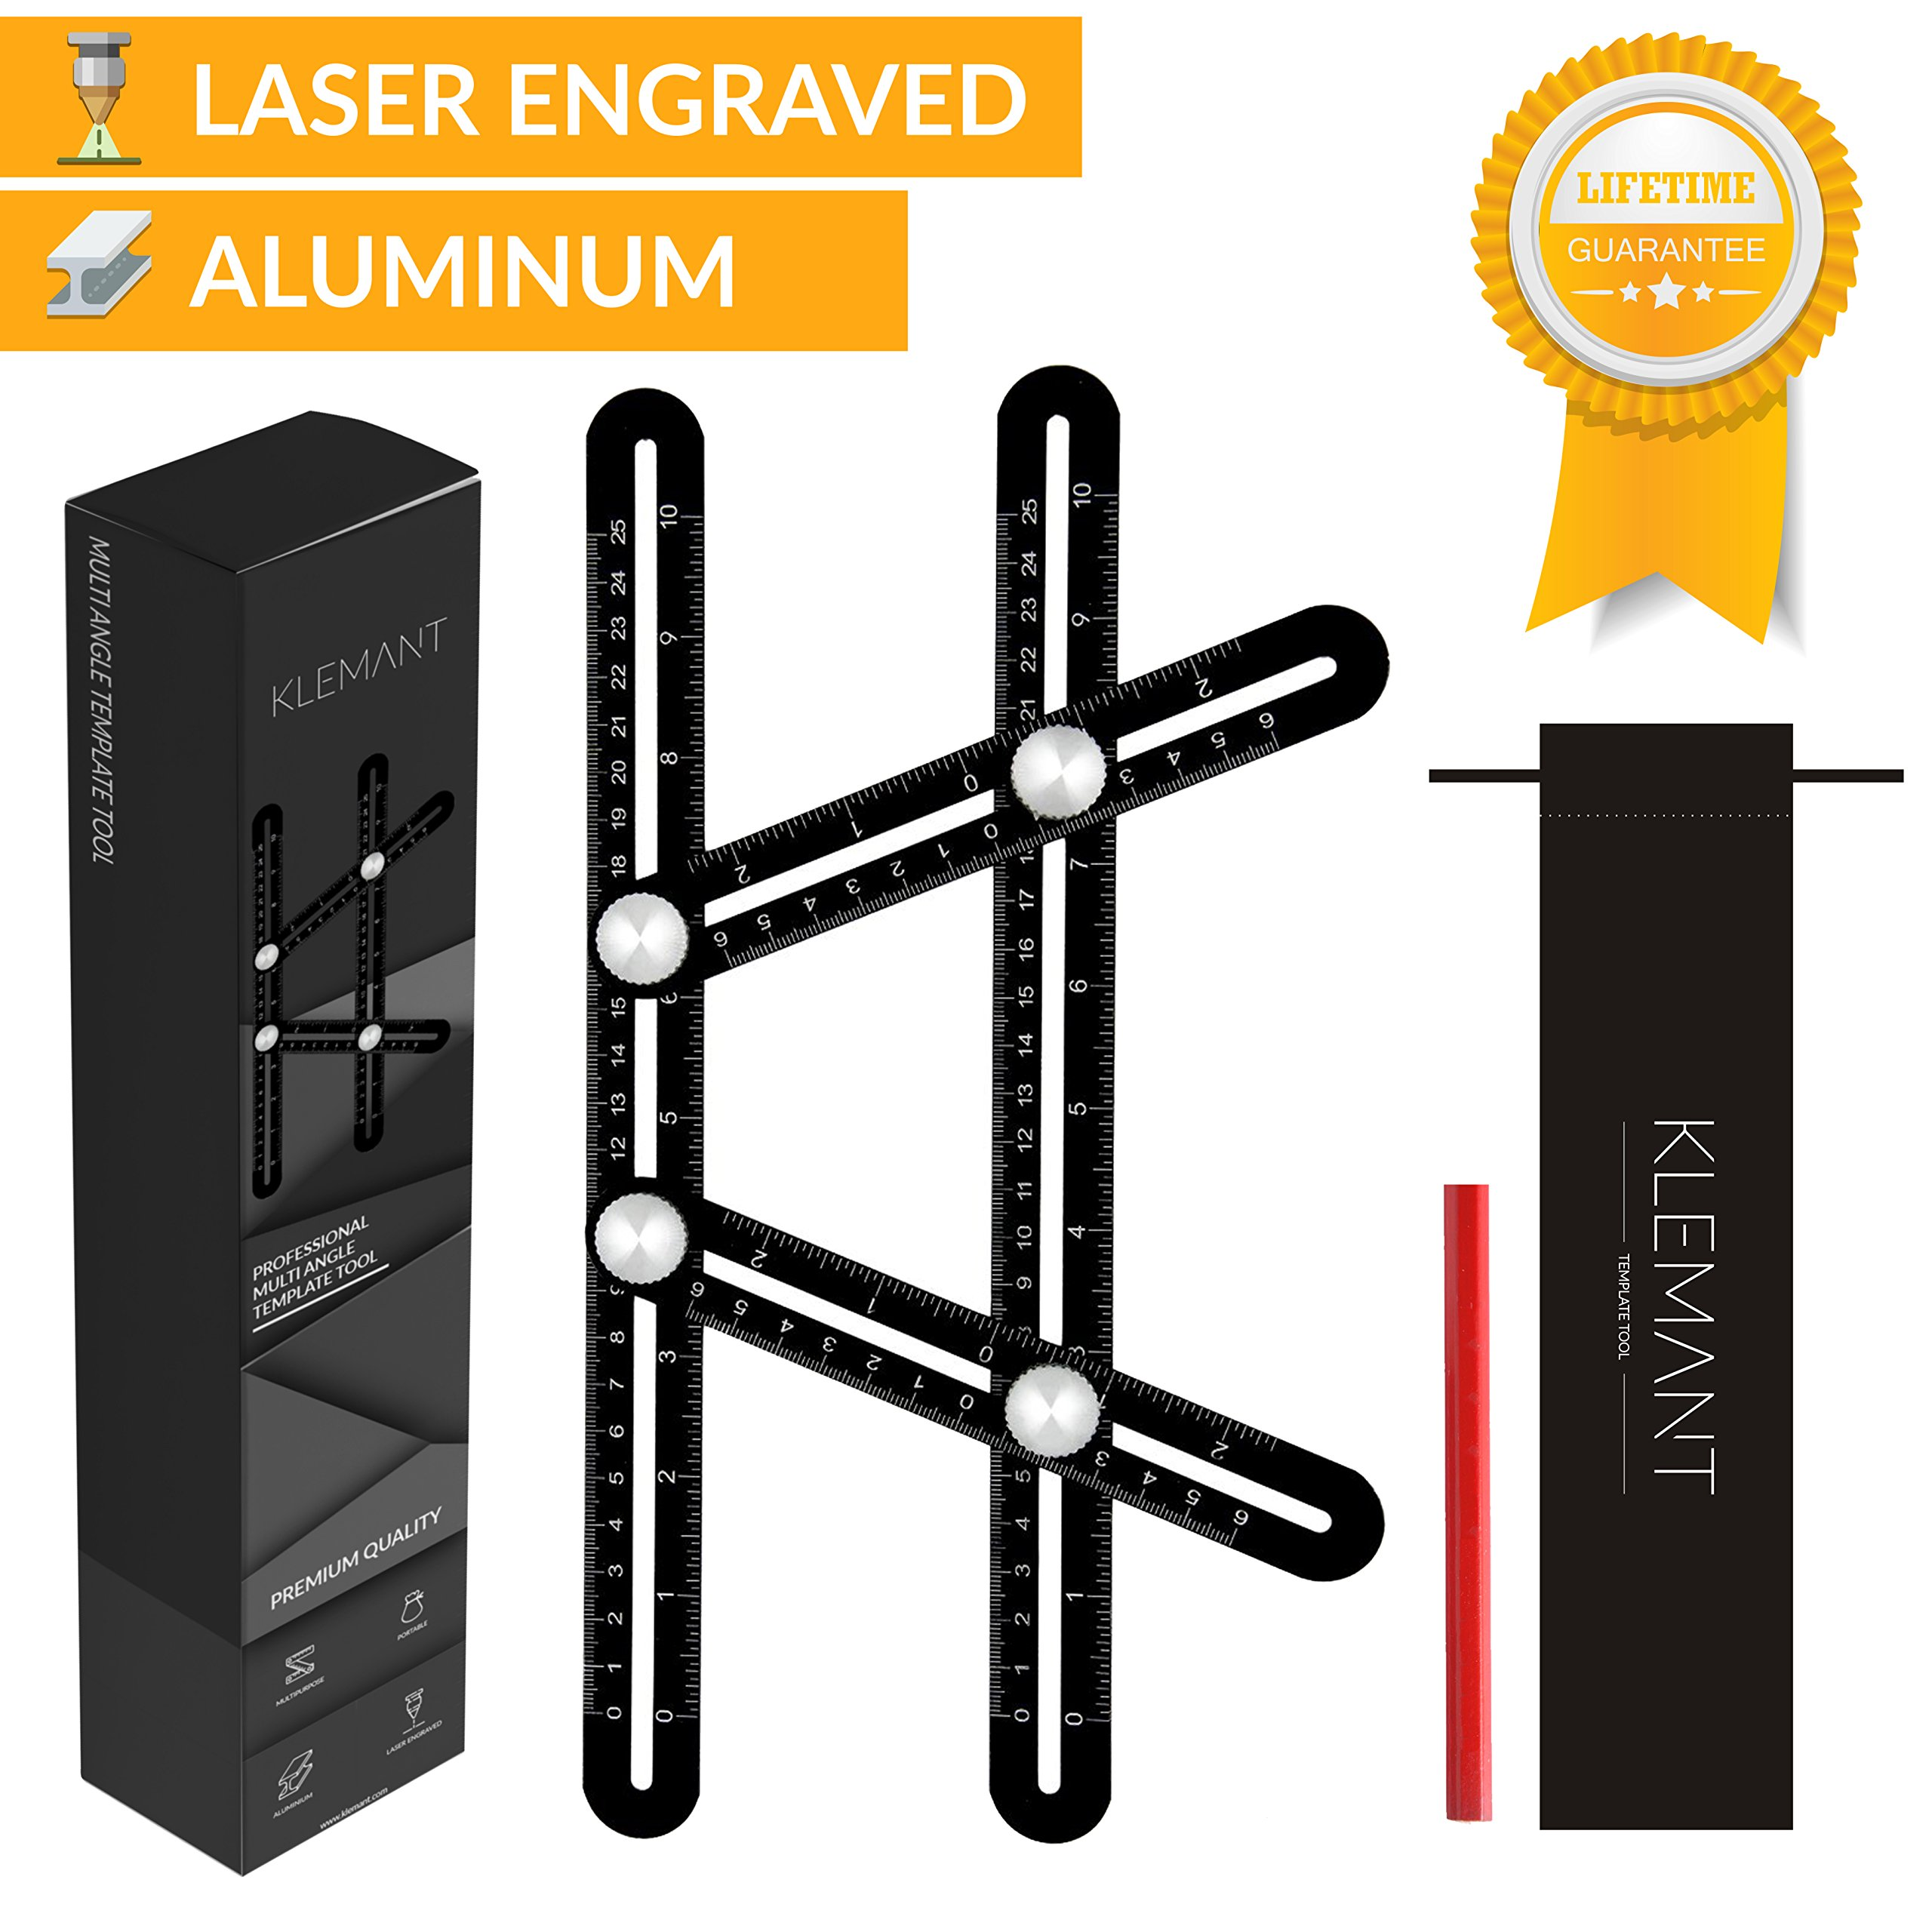 Universal Angularizer Ruler, Angleizer Template Tool - Measure Any Angle - Aluminum Multi Angle Ruler | Laser Engraved Markings | Metal Knobs for Builders, DIY, Carpenters, Roofers, Tilers, Craftsmen